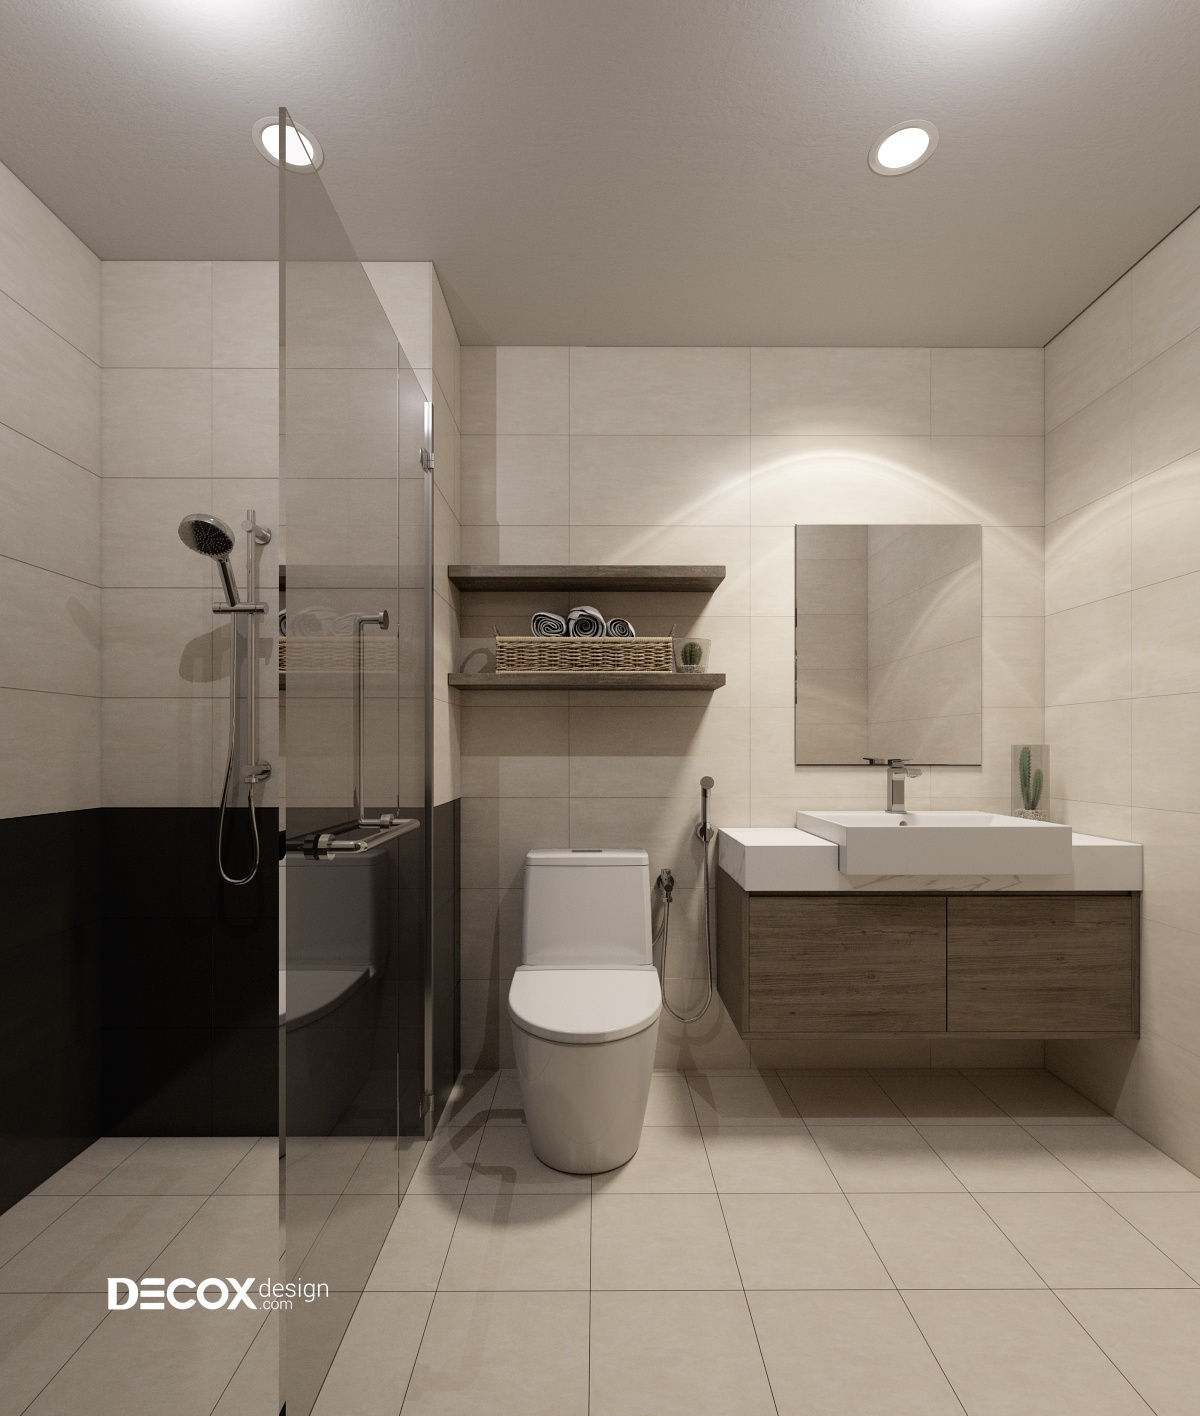 thiet-ke-noi-that-the-sun-avenue-100m2-de180125-wc-chung-14-decox-design